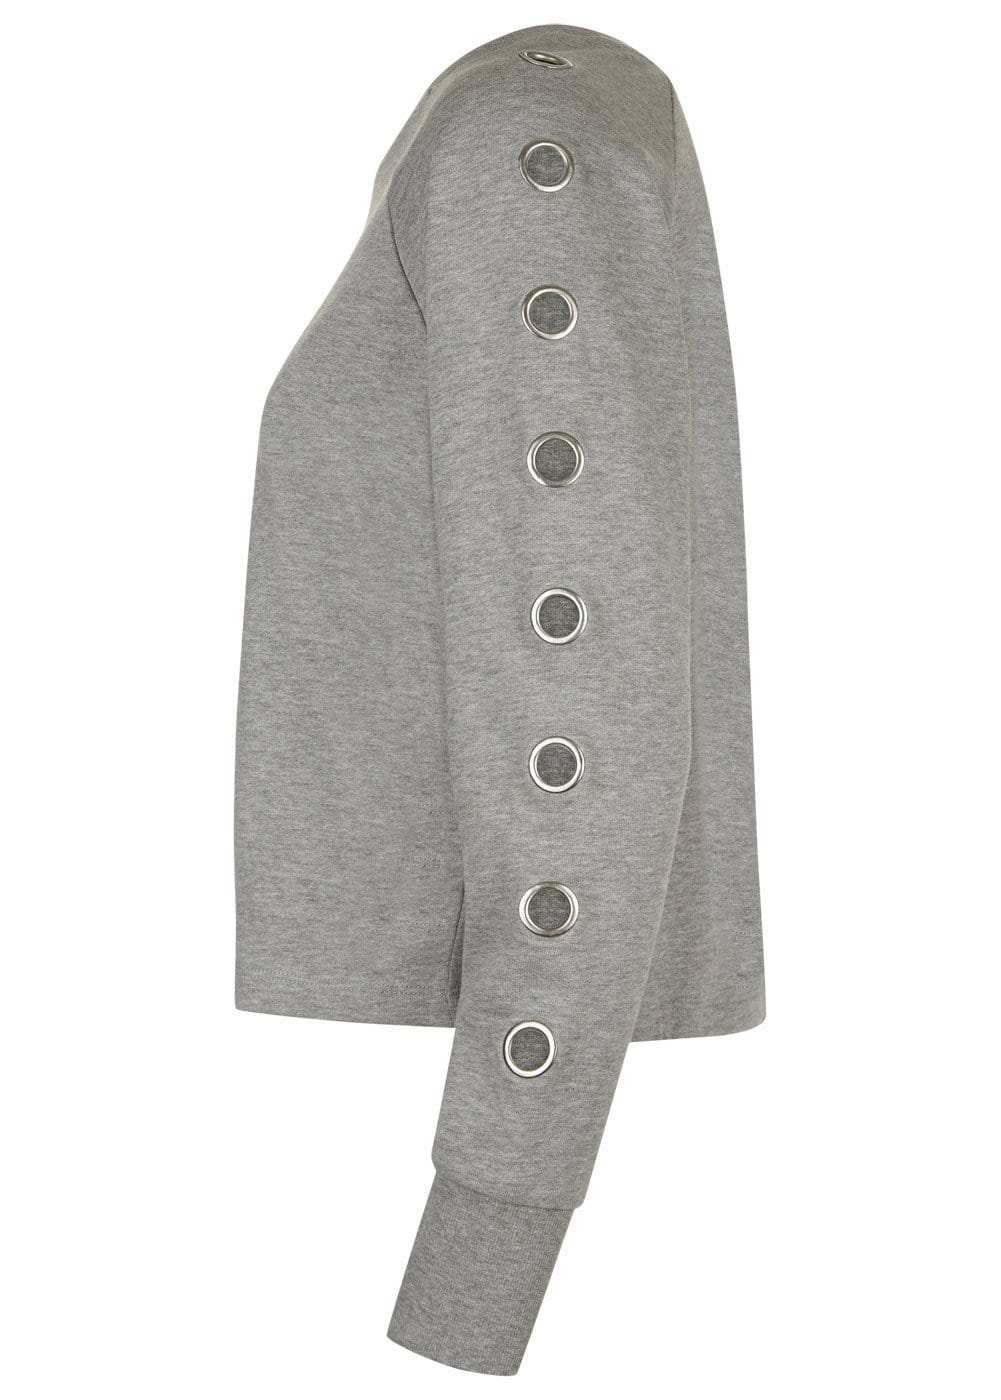 TeenzShop Youth Girls Grey Sweatshirt With Eyelets